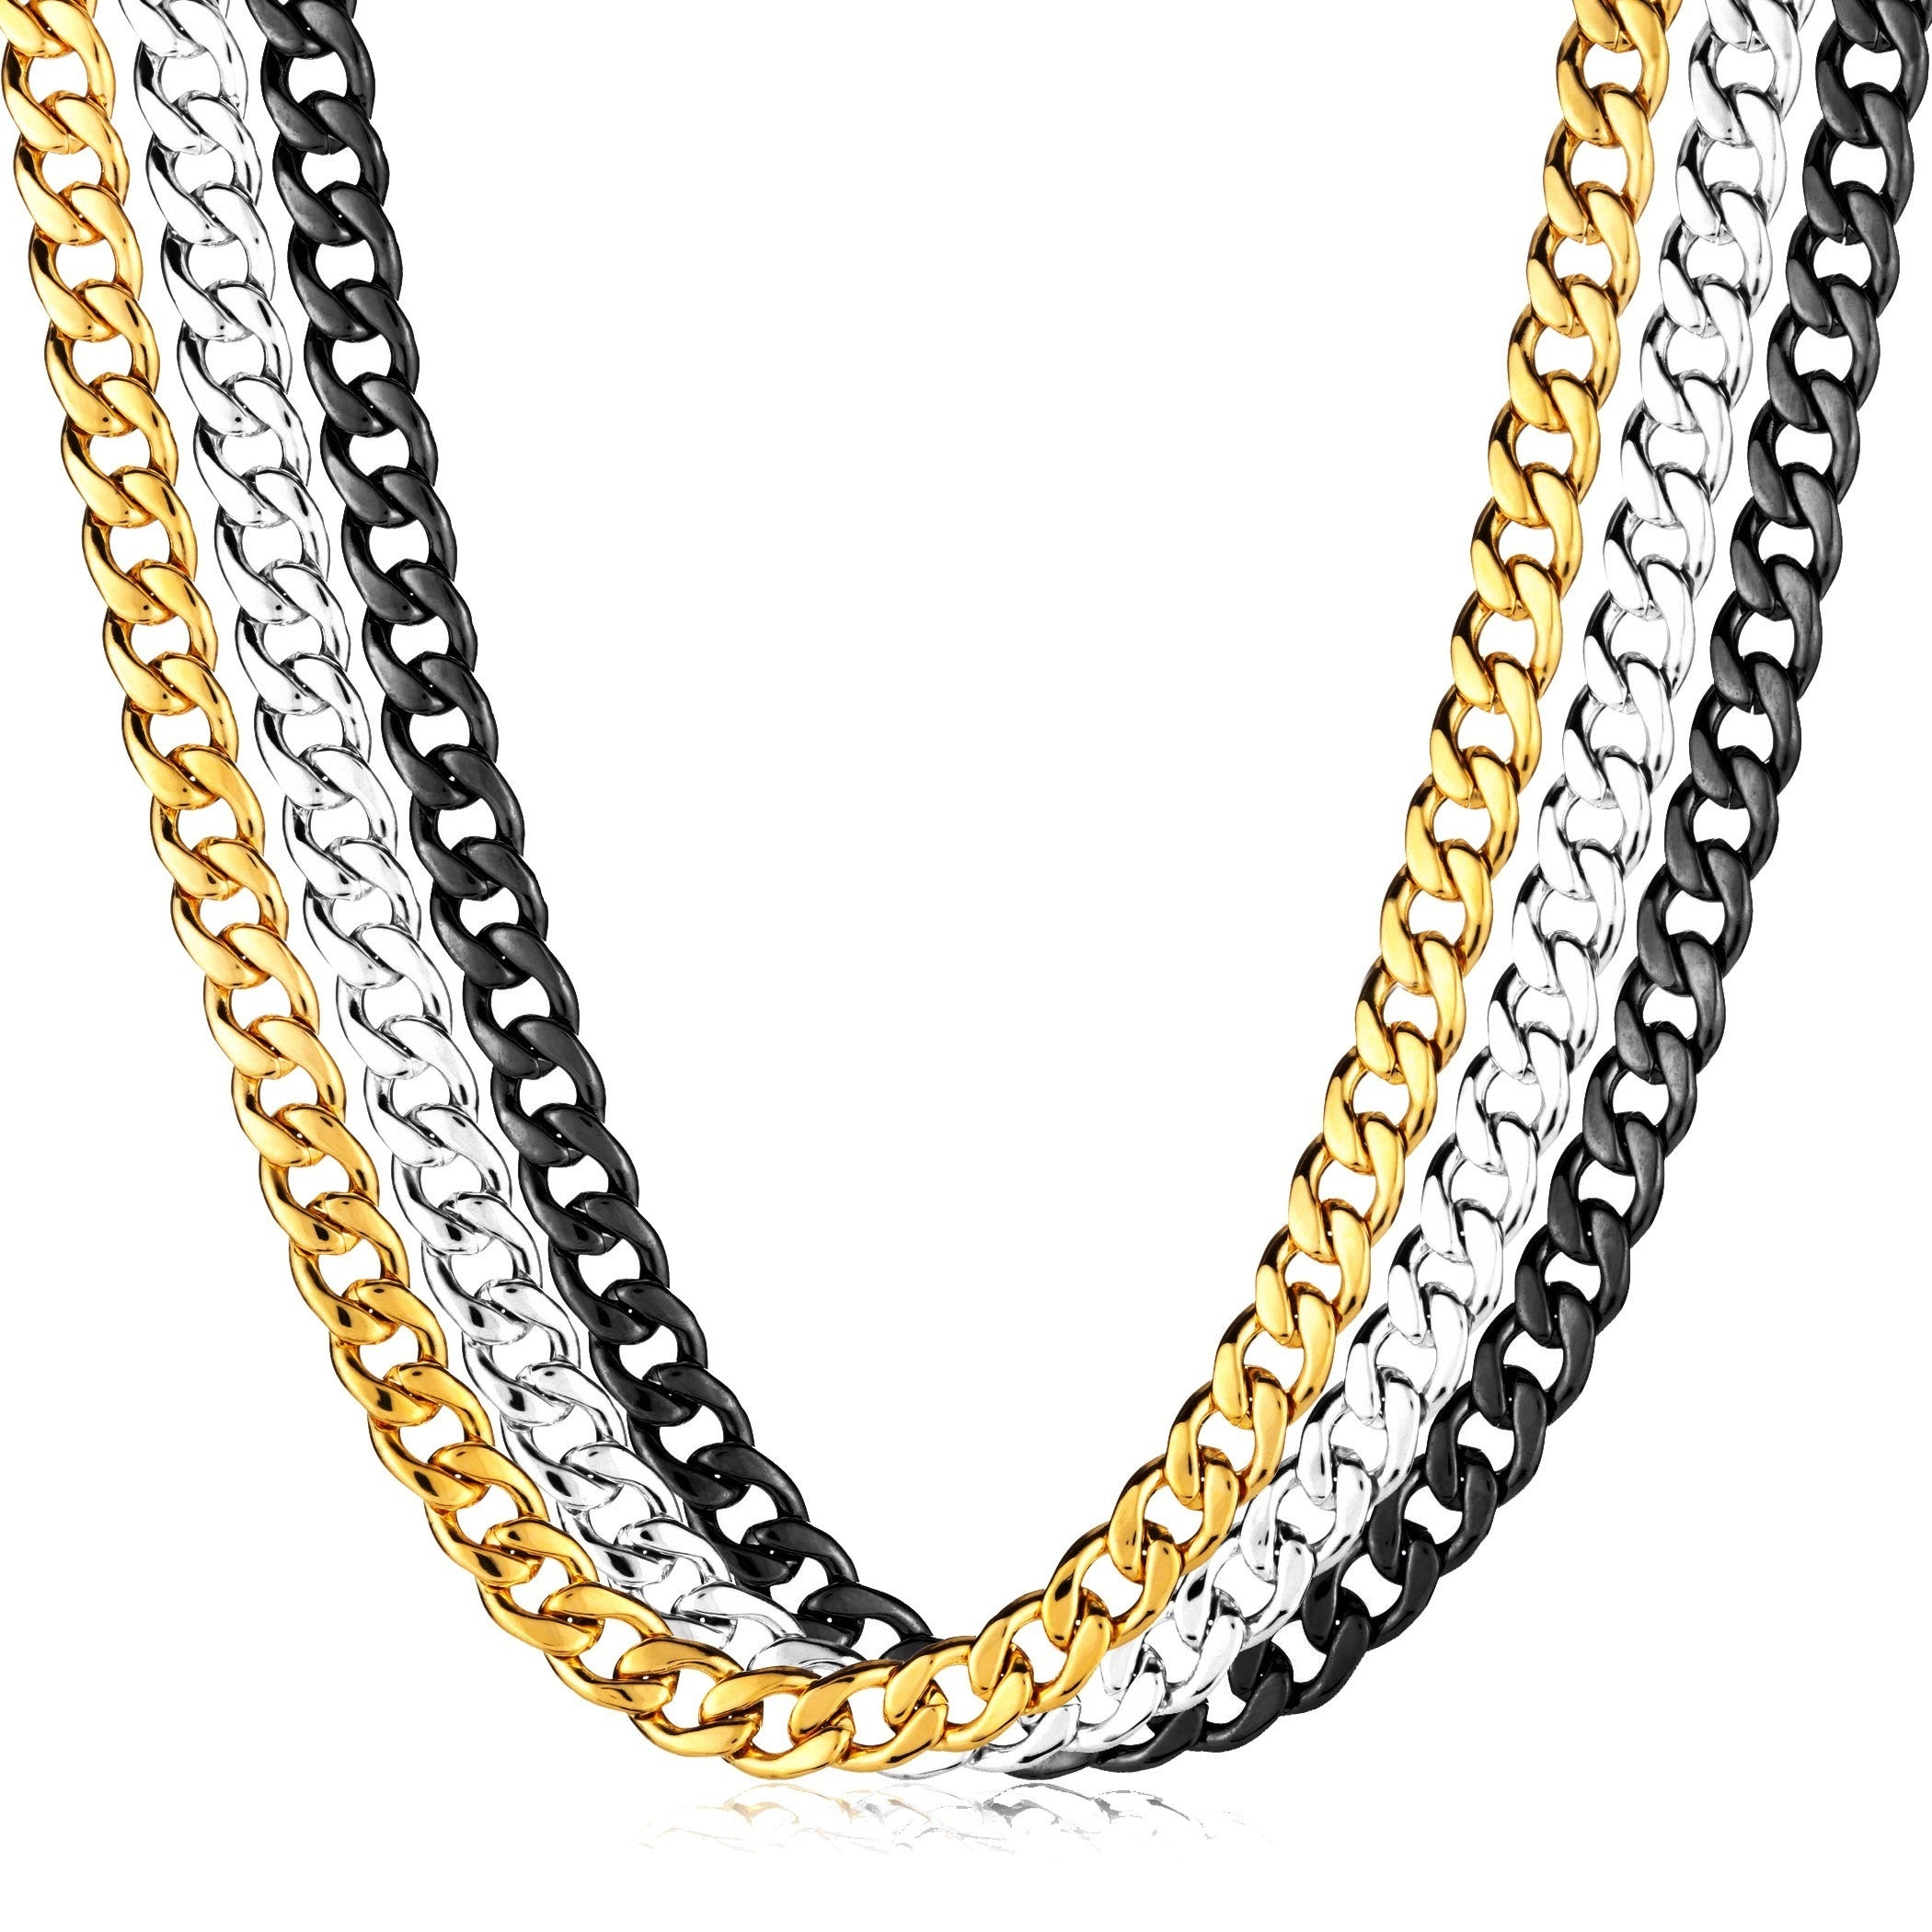 c403a913c1559 Crucible Polished Stainless Steel Curb Chain Necklace (9mm) - 24 Inches